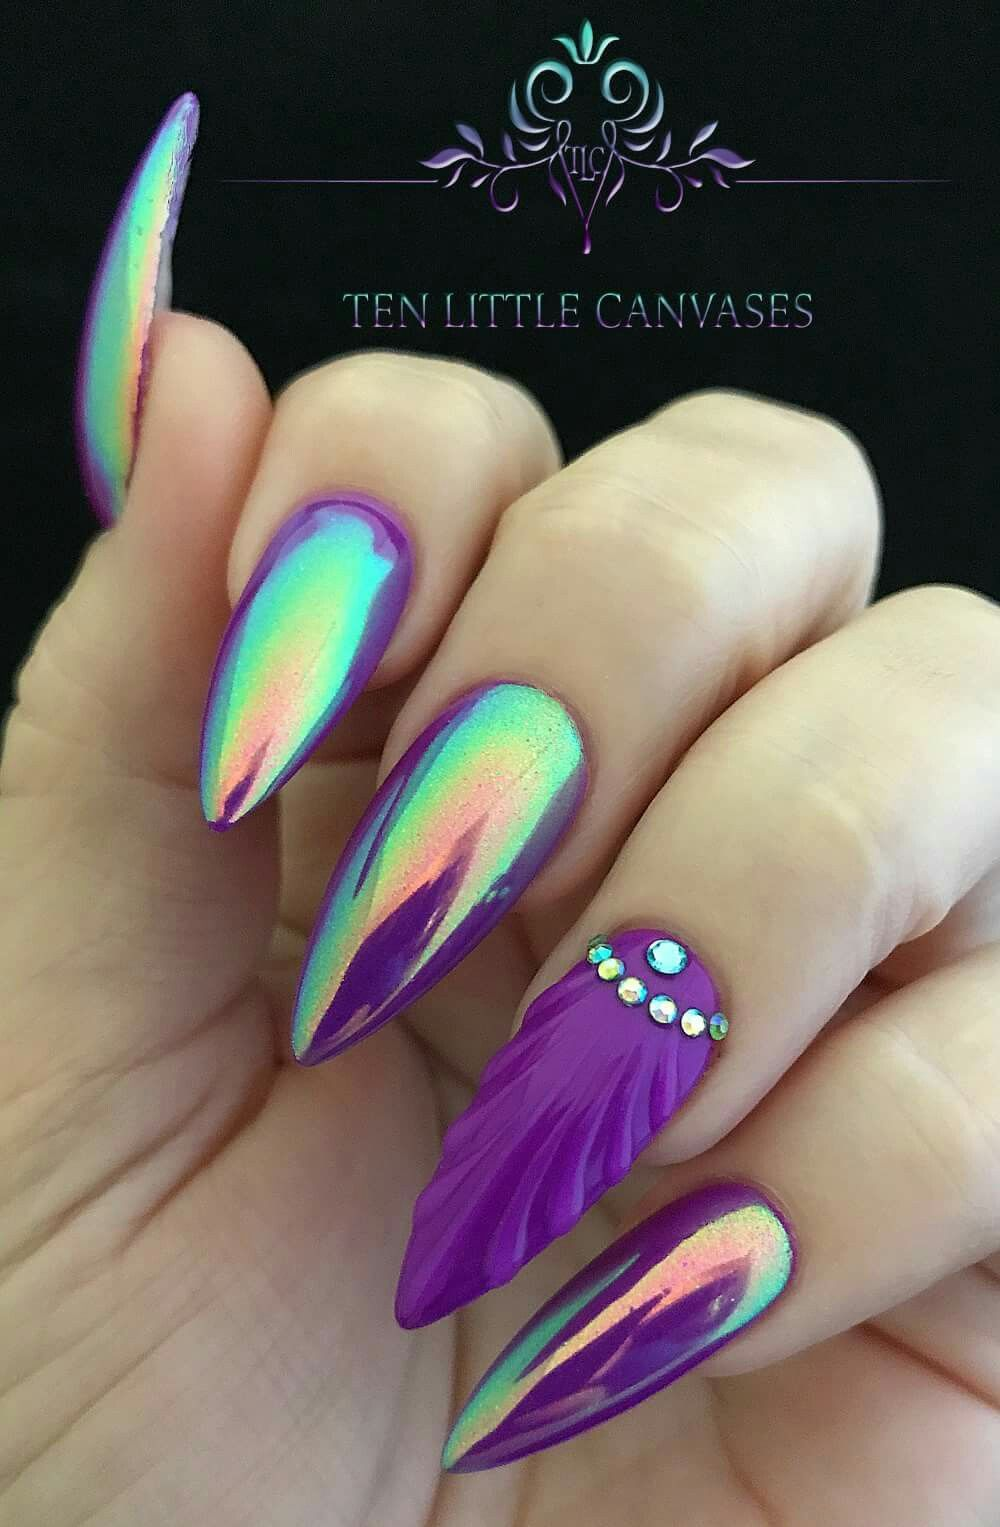 Luminaura Aurora by Social Claws pigment over neon purple with a shell nail  design & crystals as an accent nail - Pinterest // @sereinserenity ⚘ • Queen Claws • Pinterest